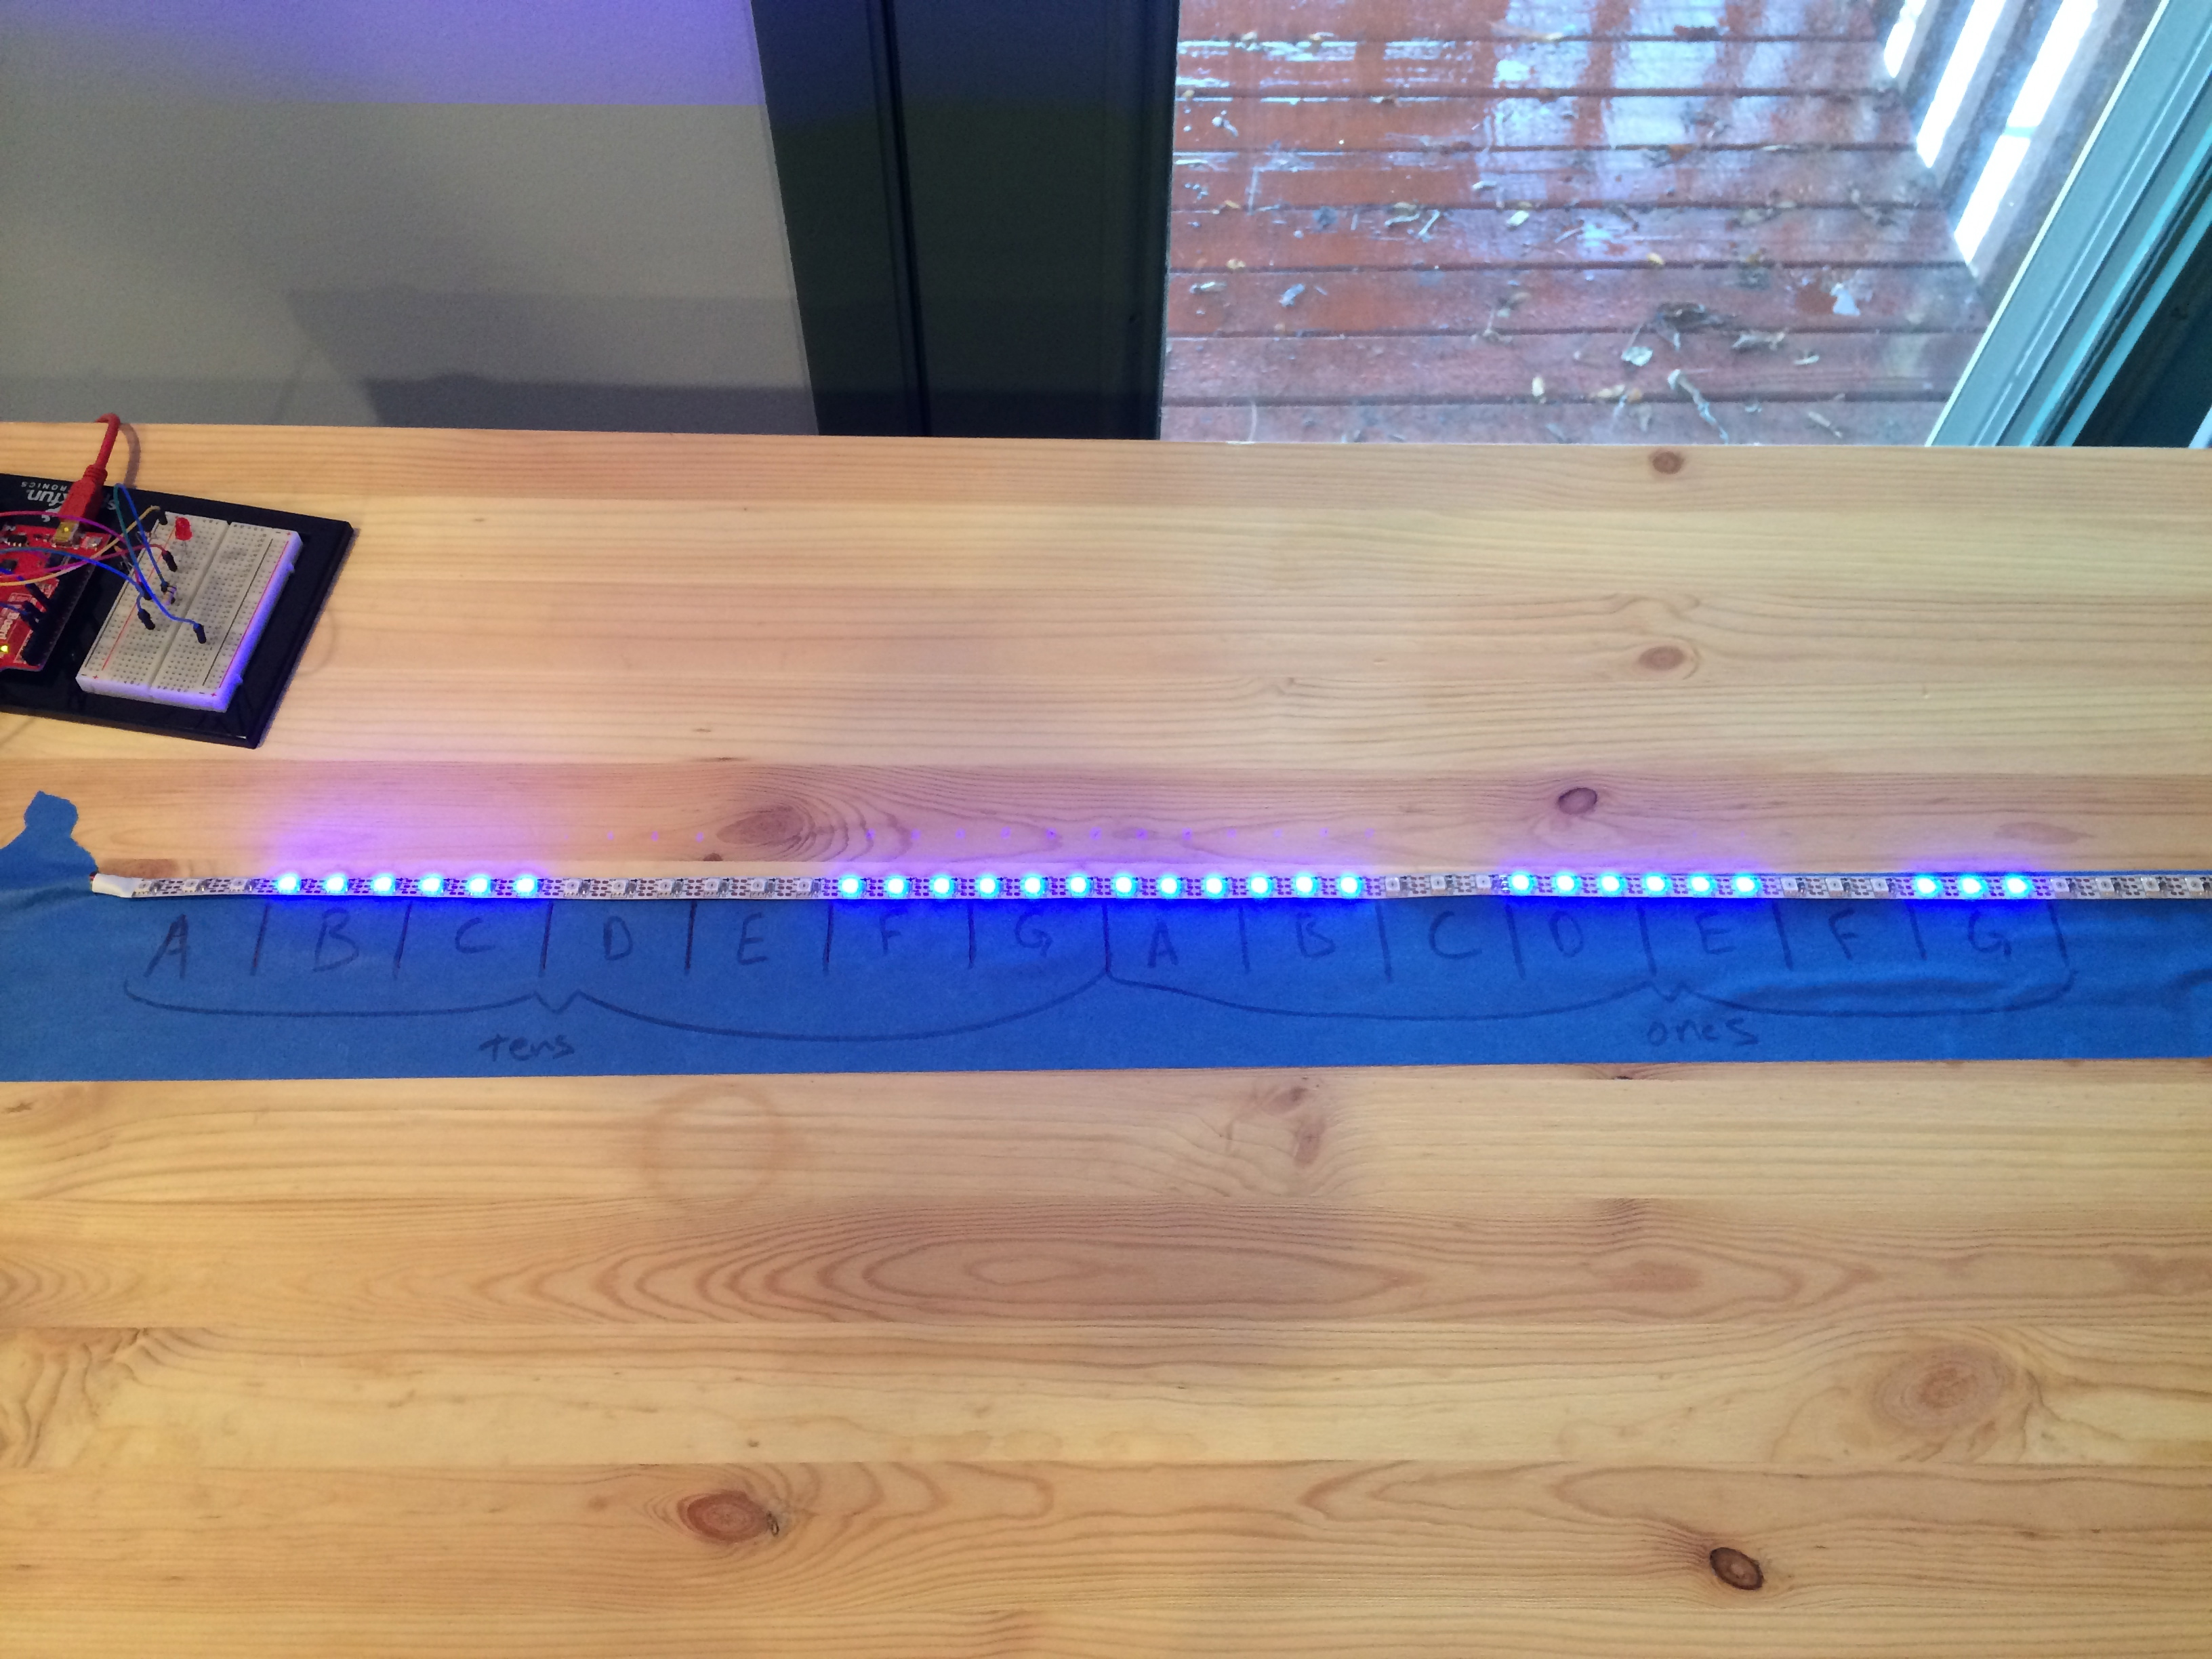 LED Strips As 7 Segment Display - rubyist